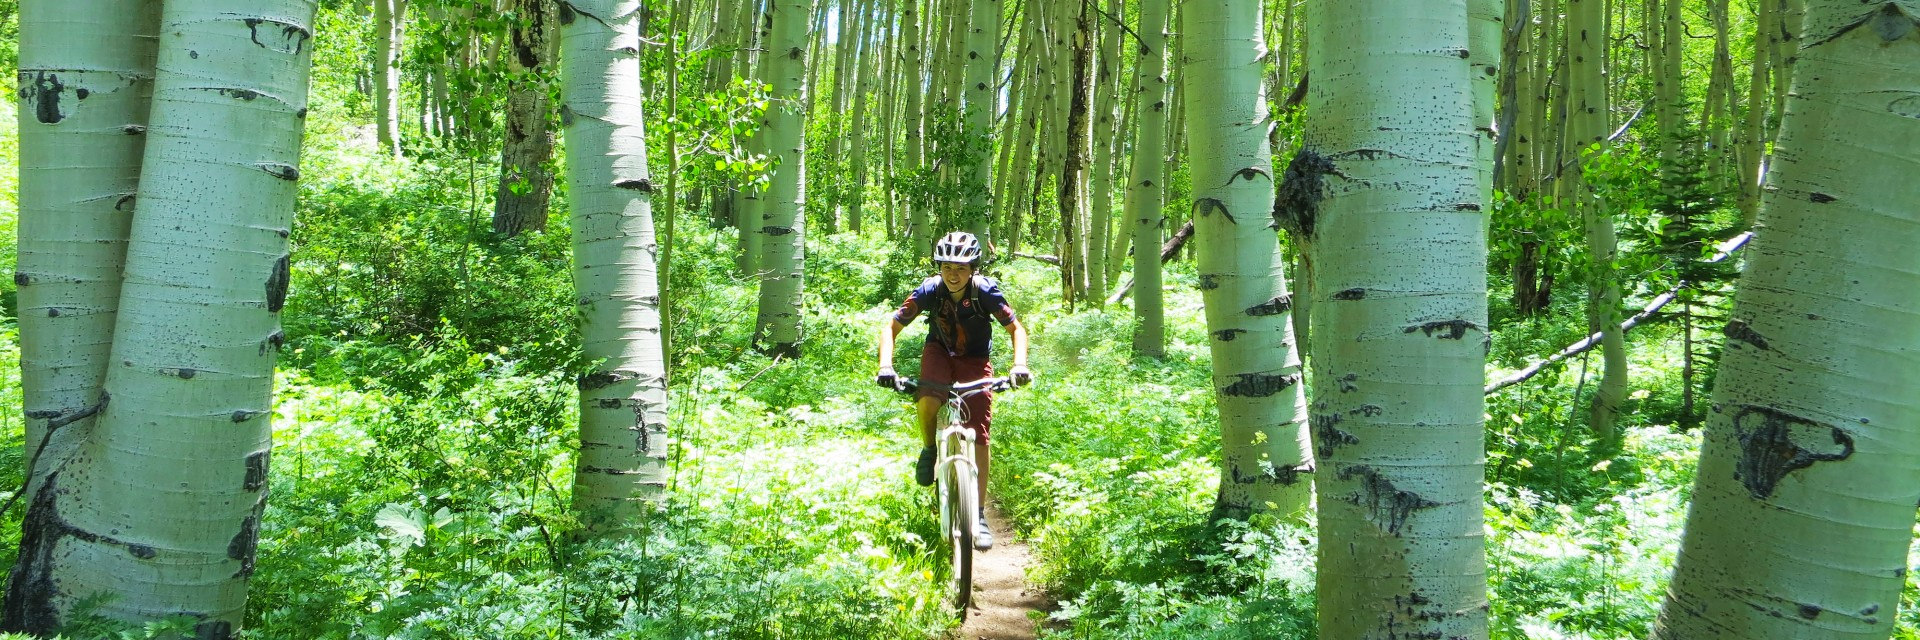 Through the aspens, Crested Butte Singletrack, guided mountain bike tour